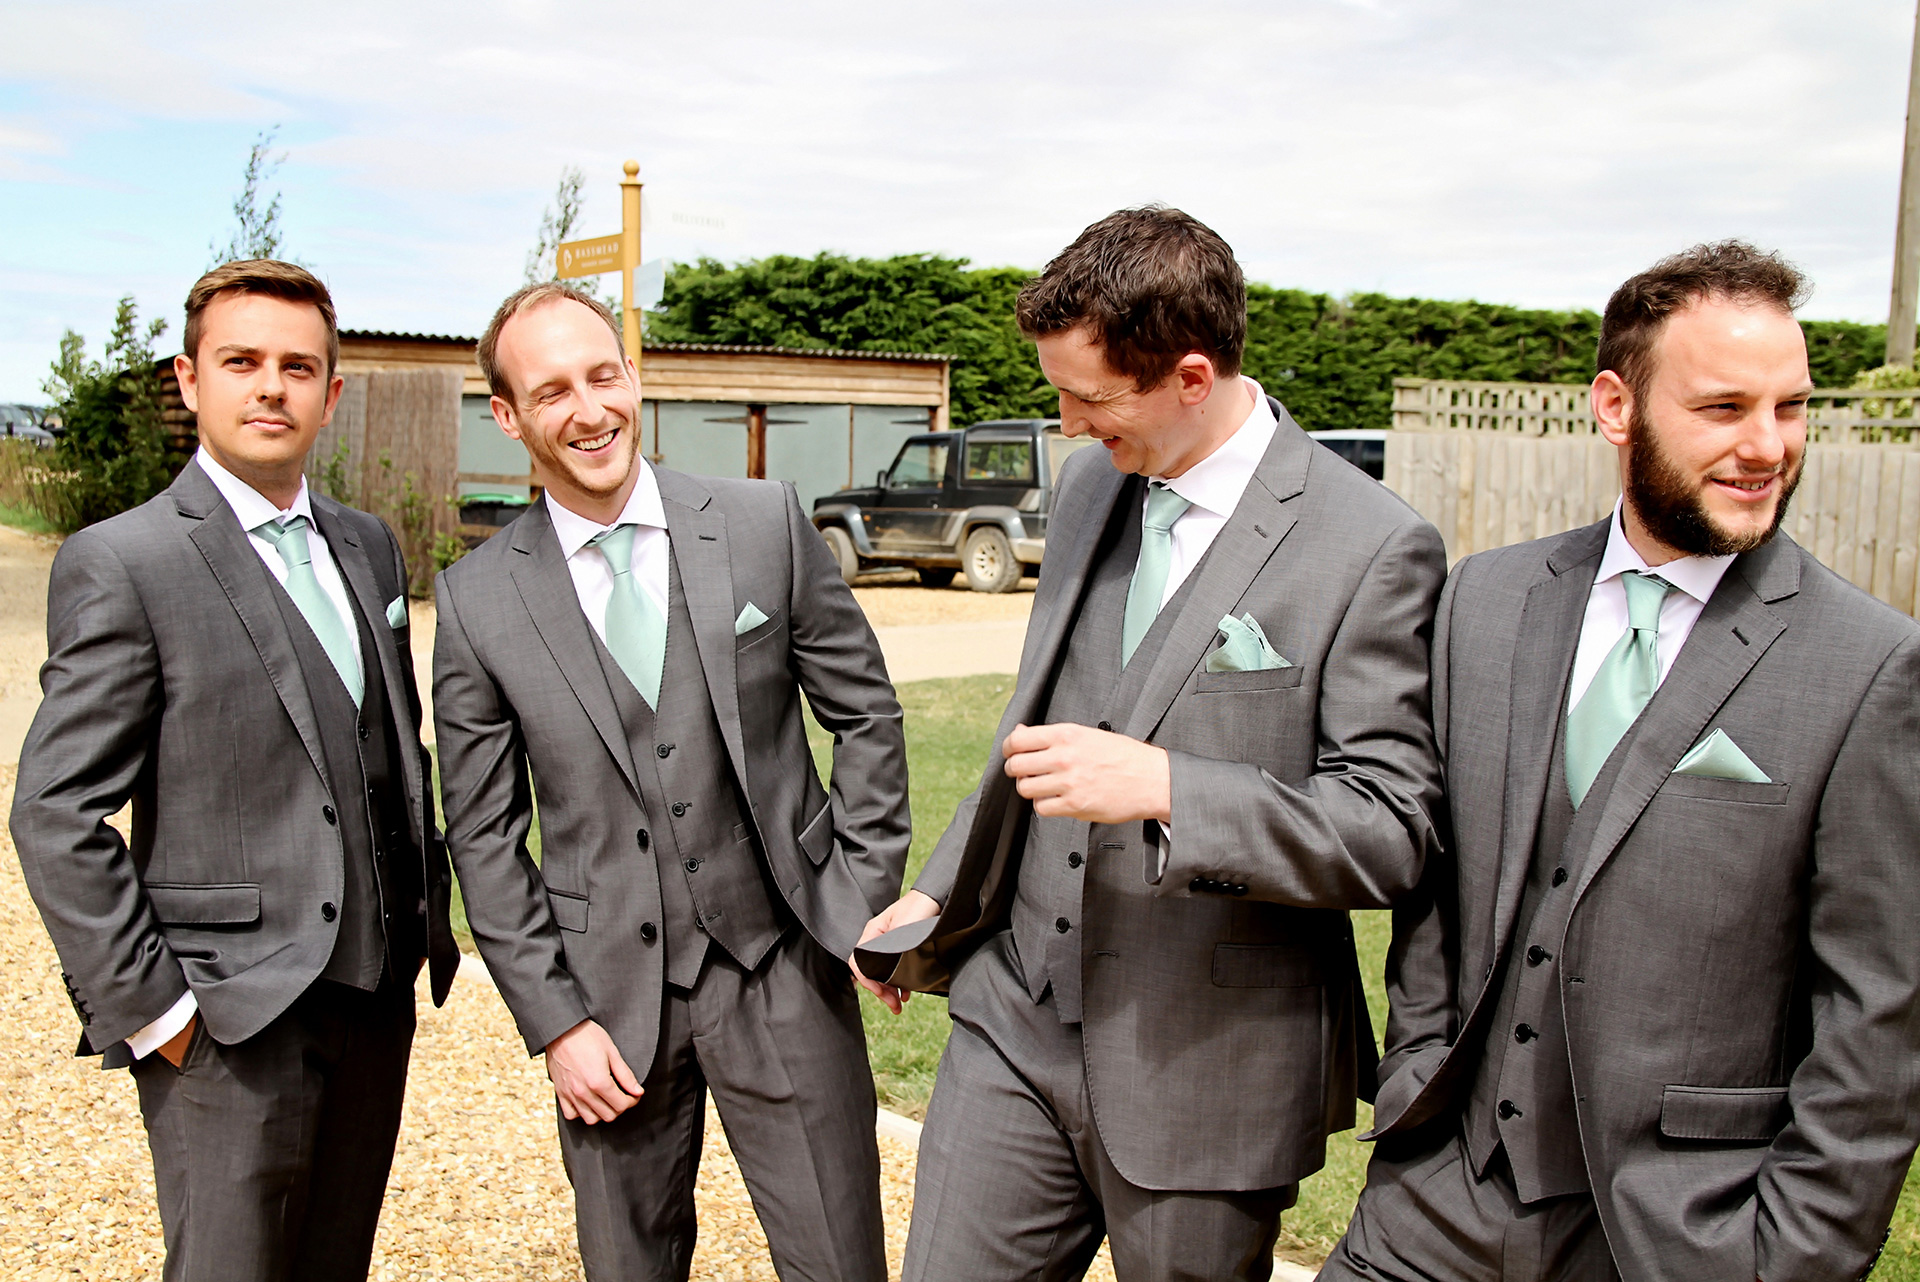 The groom and his groomsmen wore grey suits and mint green ties for his wedding at Bassmead Manor Barns